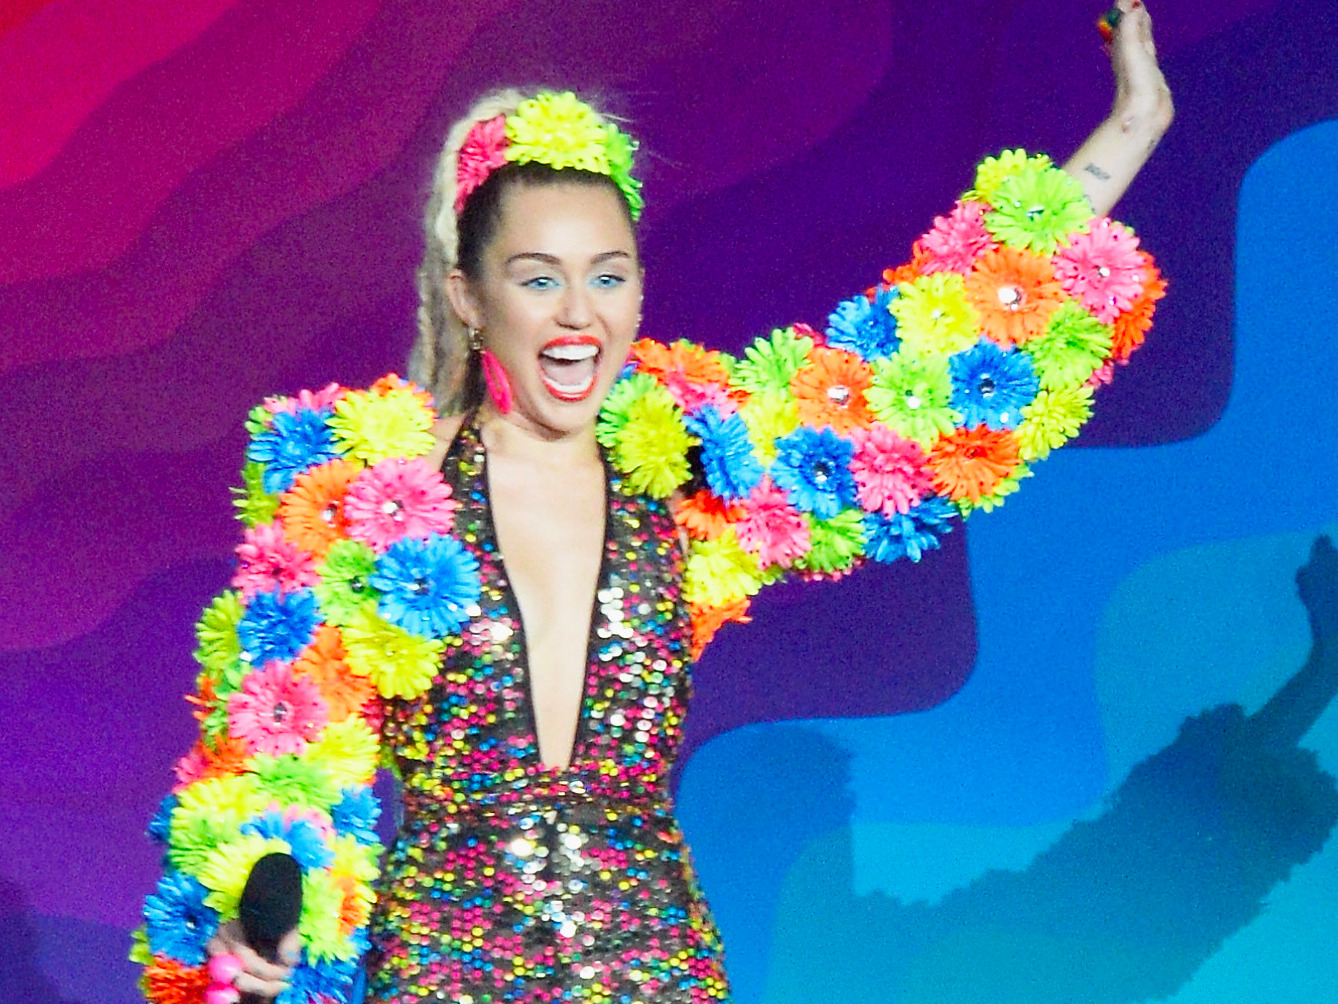 miley-cyrus-kicked-off-the-mtv-vmas-in-the-most-miley-cyrus-way-possible